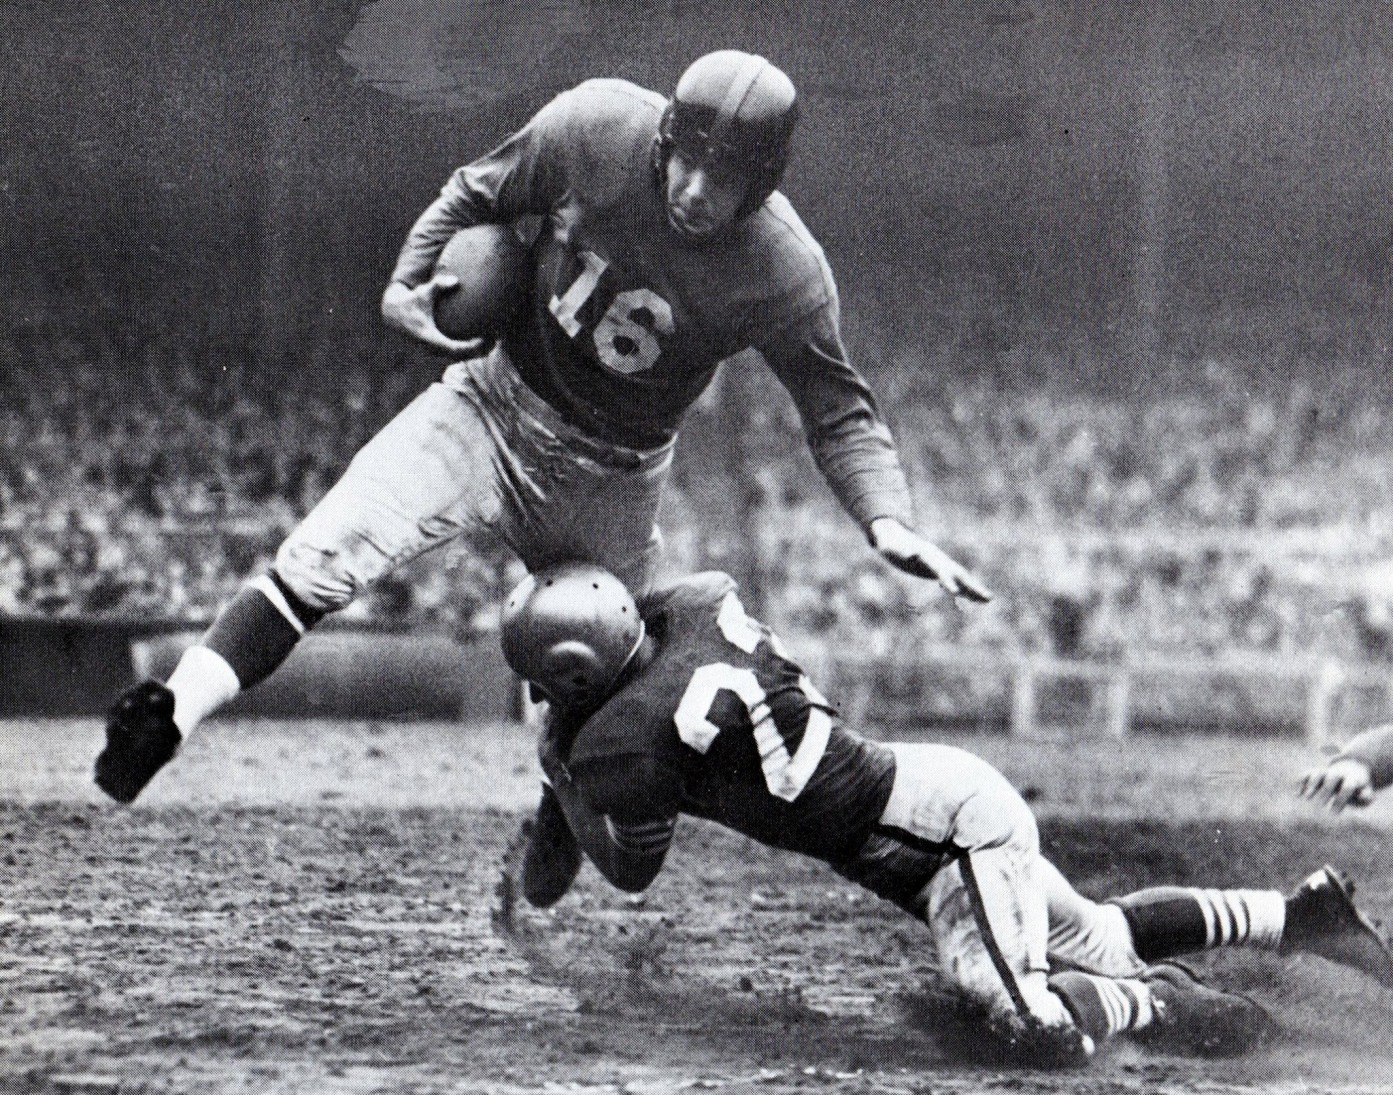 Frank Gifford, New York Giants (November 9, 1952)